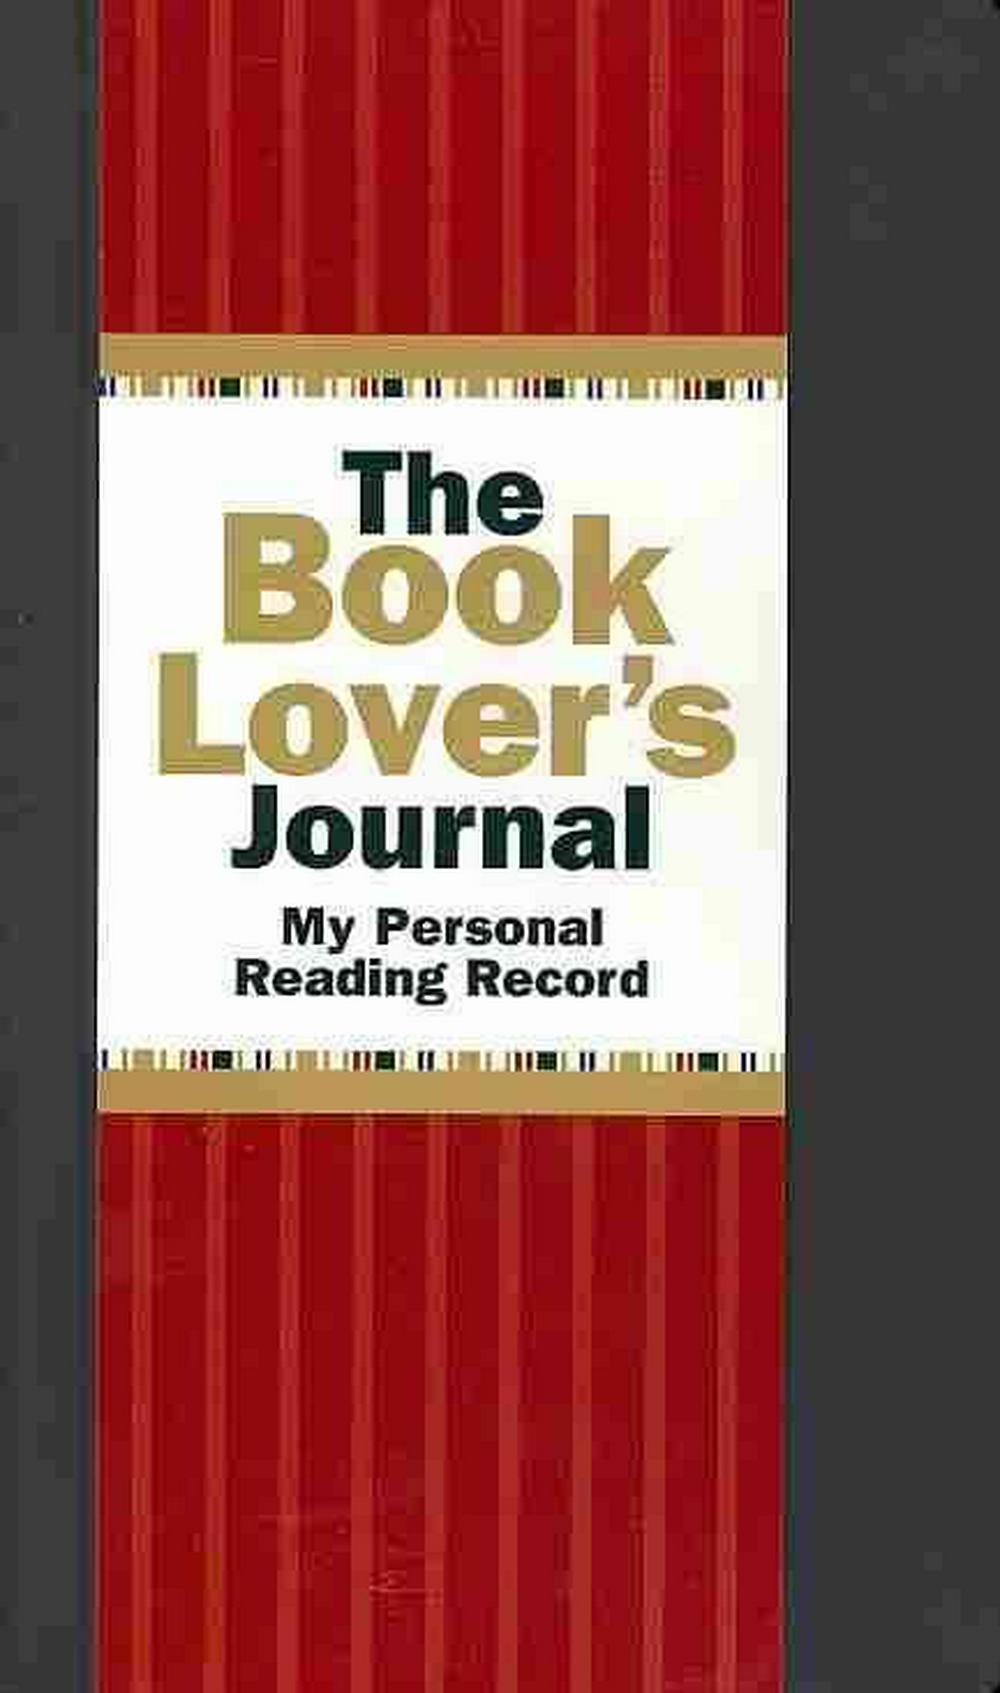 Book Lover's Journal by Rene J Smith, ISBN: 9781441304827